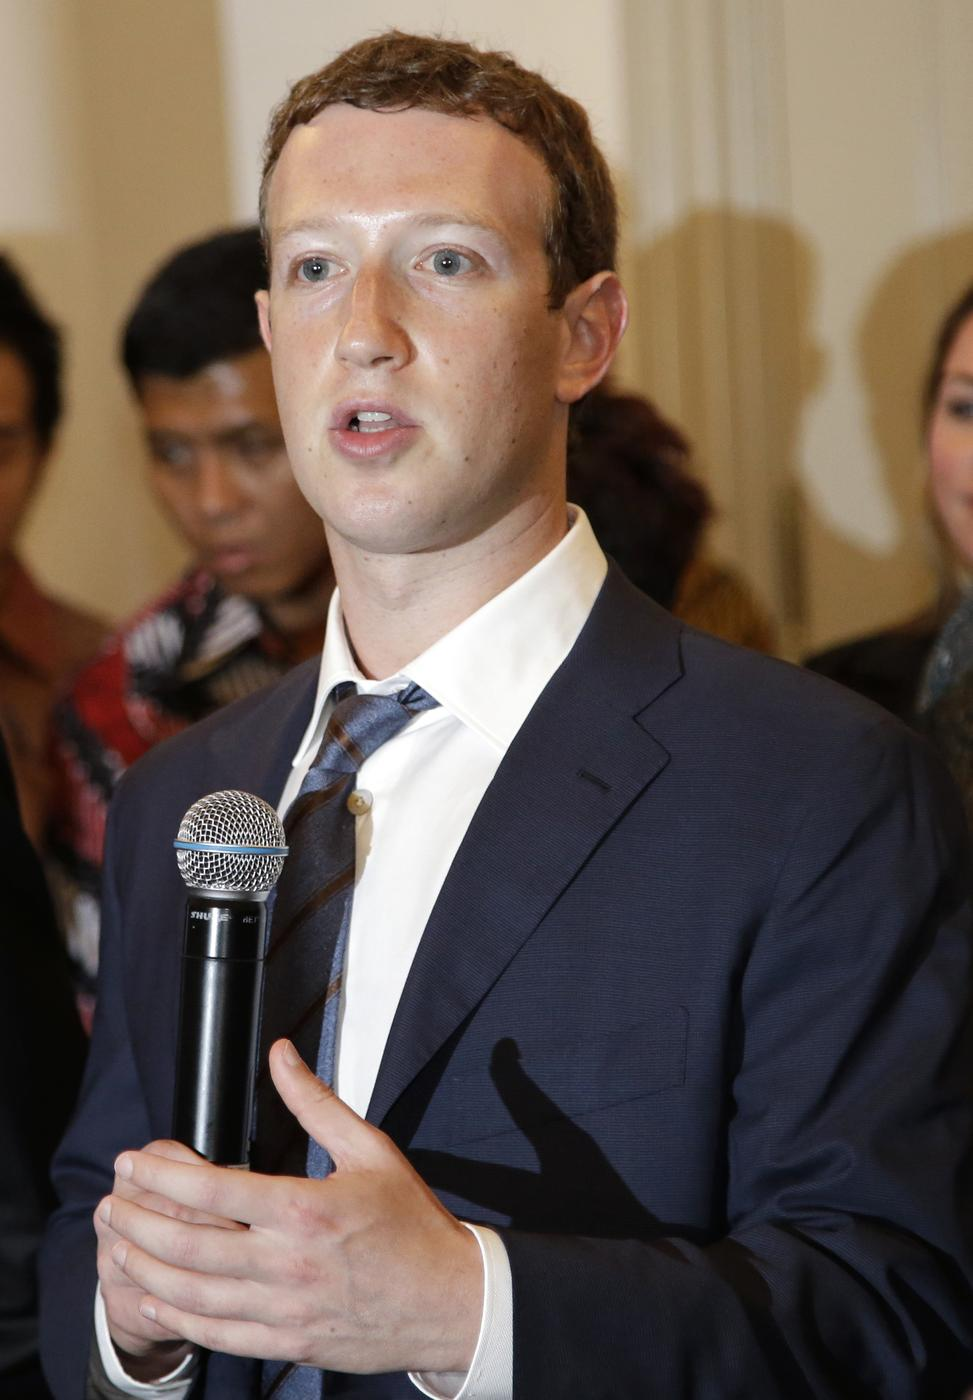 Facebook CEO Mark Zuckerberg, Ebola